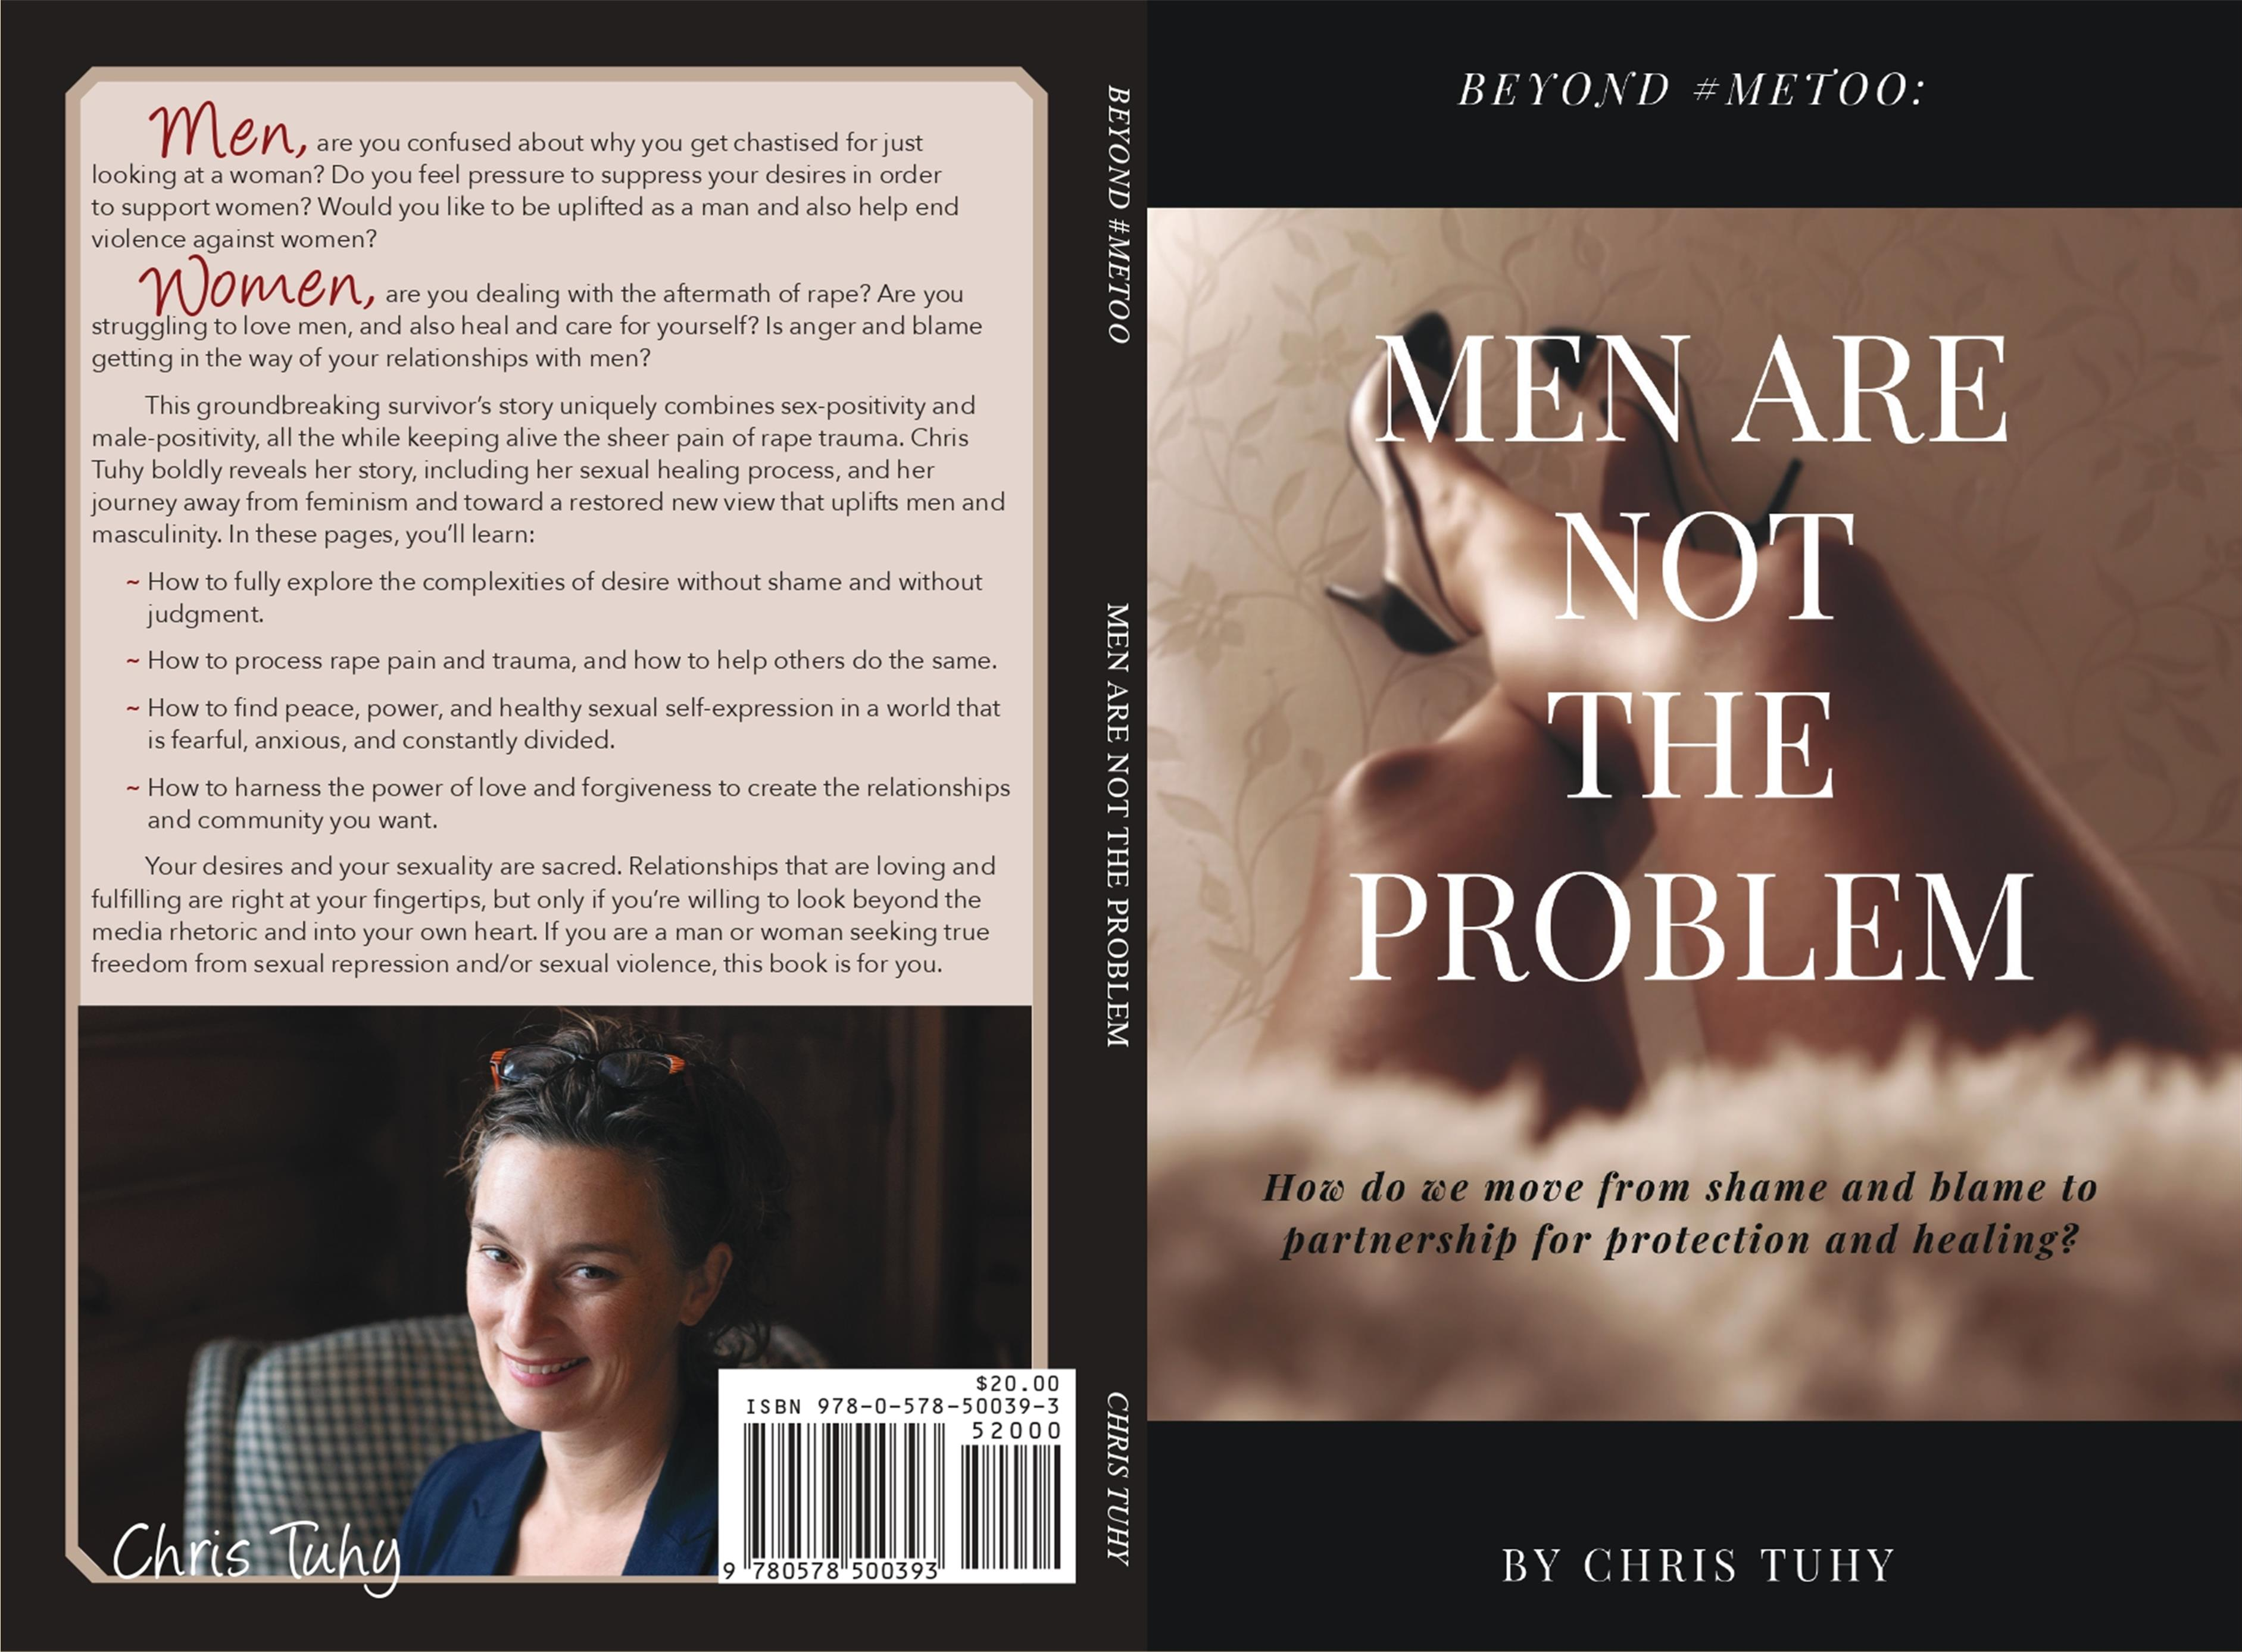 Beyond #MeToo:  Men Are Not the Problem cover image